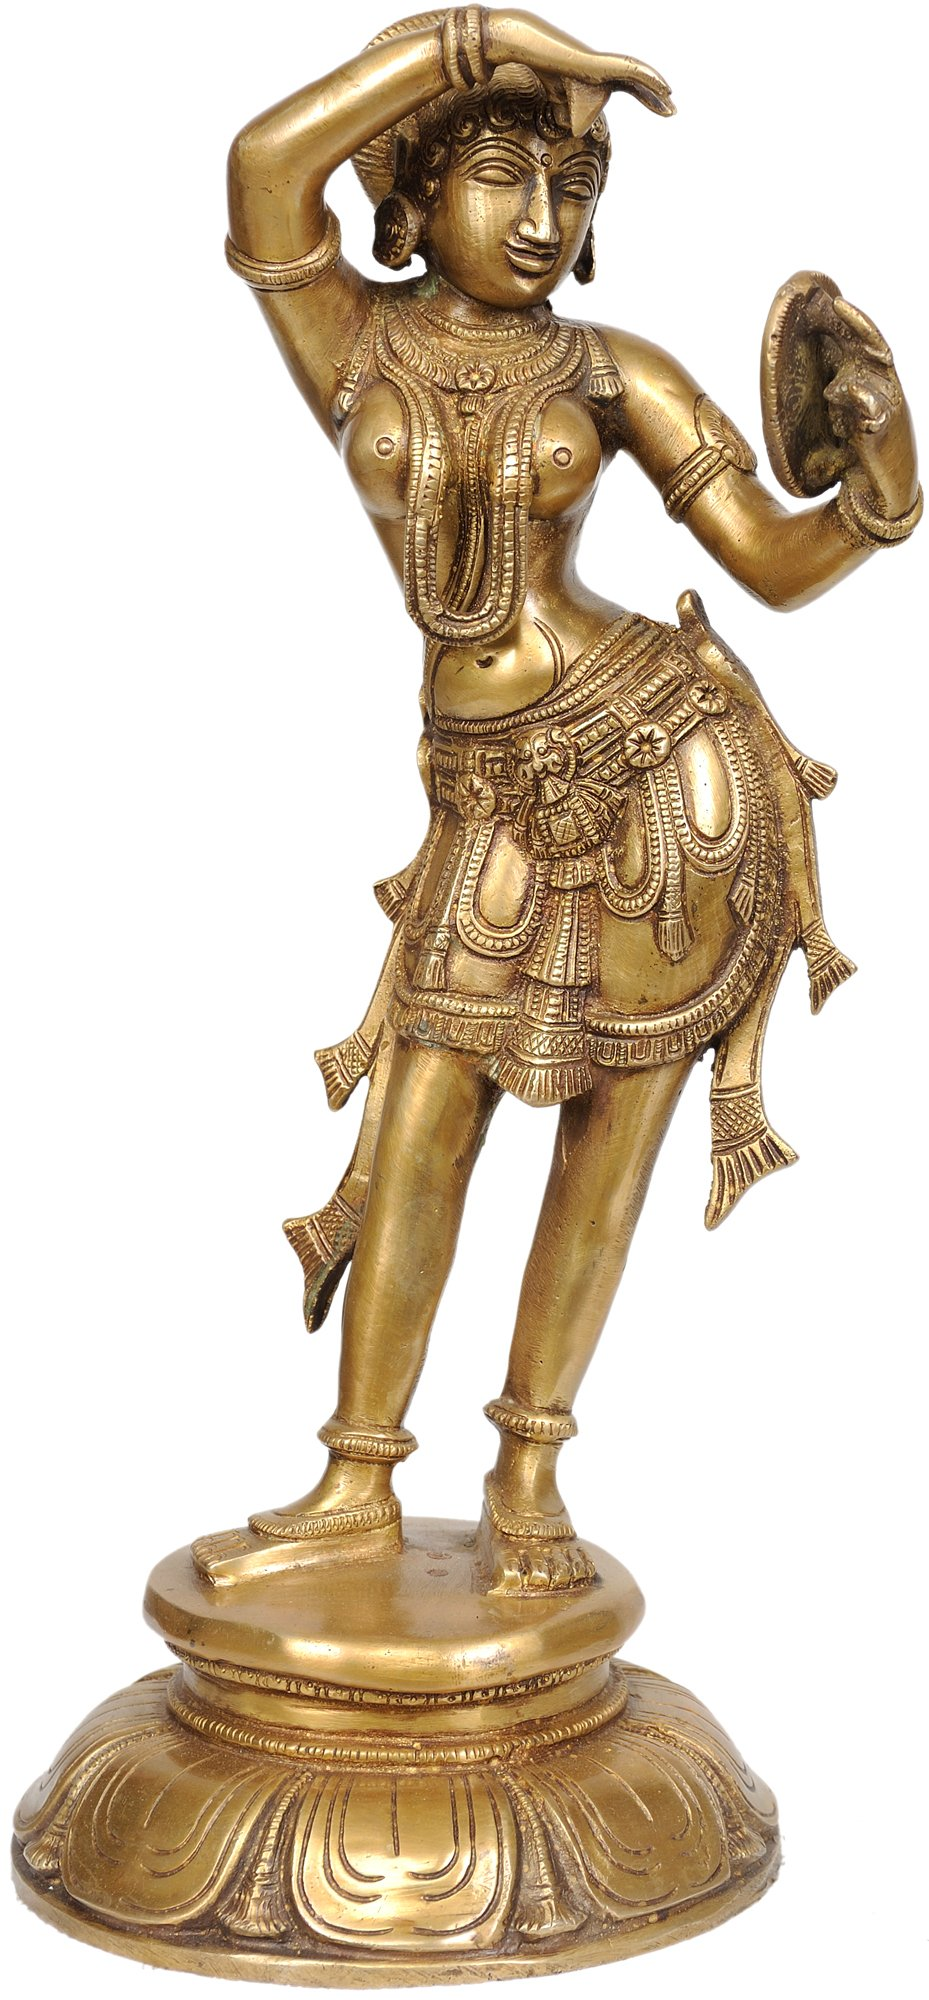 ZAD54 The Apsara Applying Vermillion (A Statue Inspired by Khajuraho) - Brass Statue